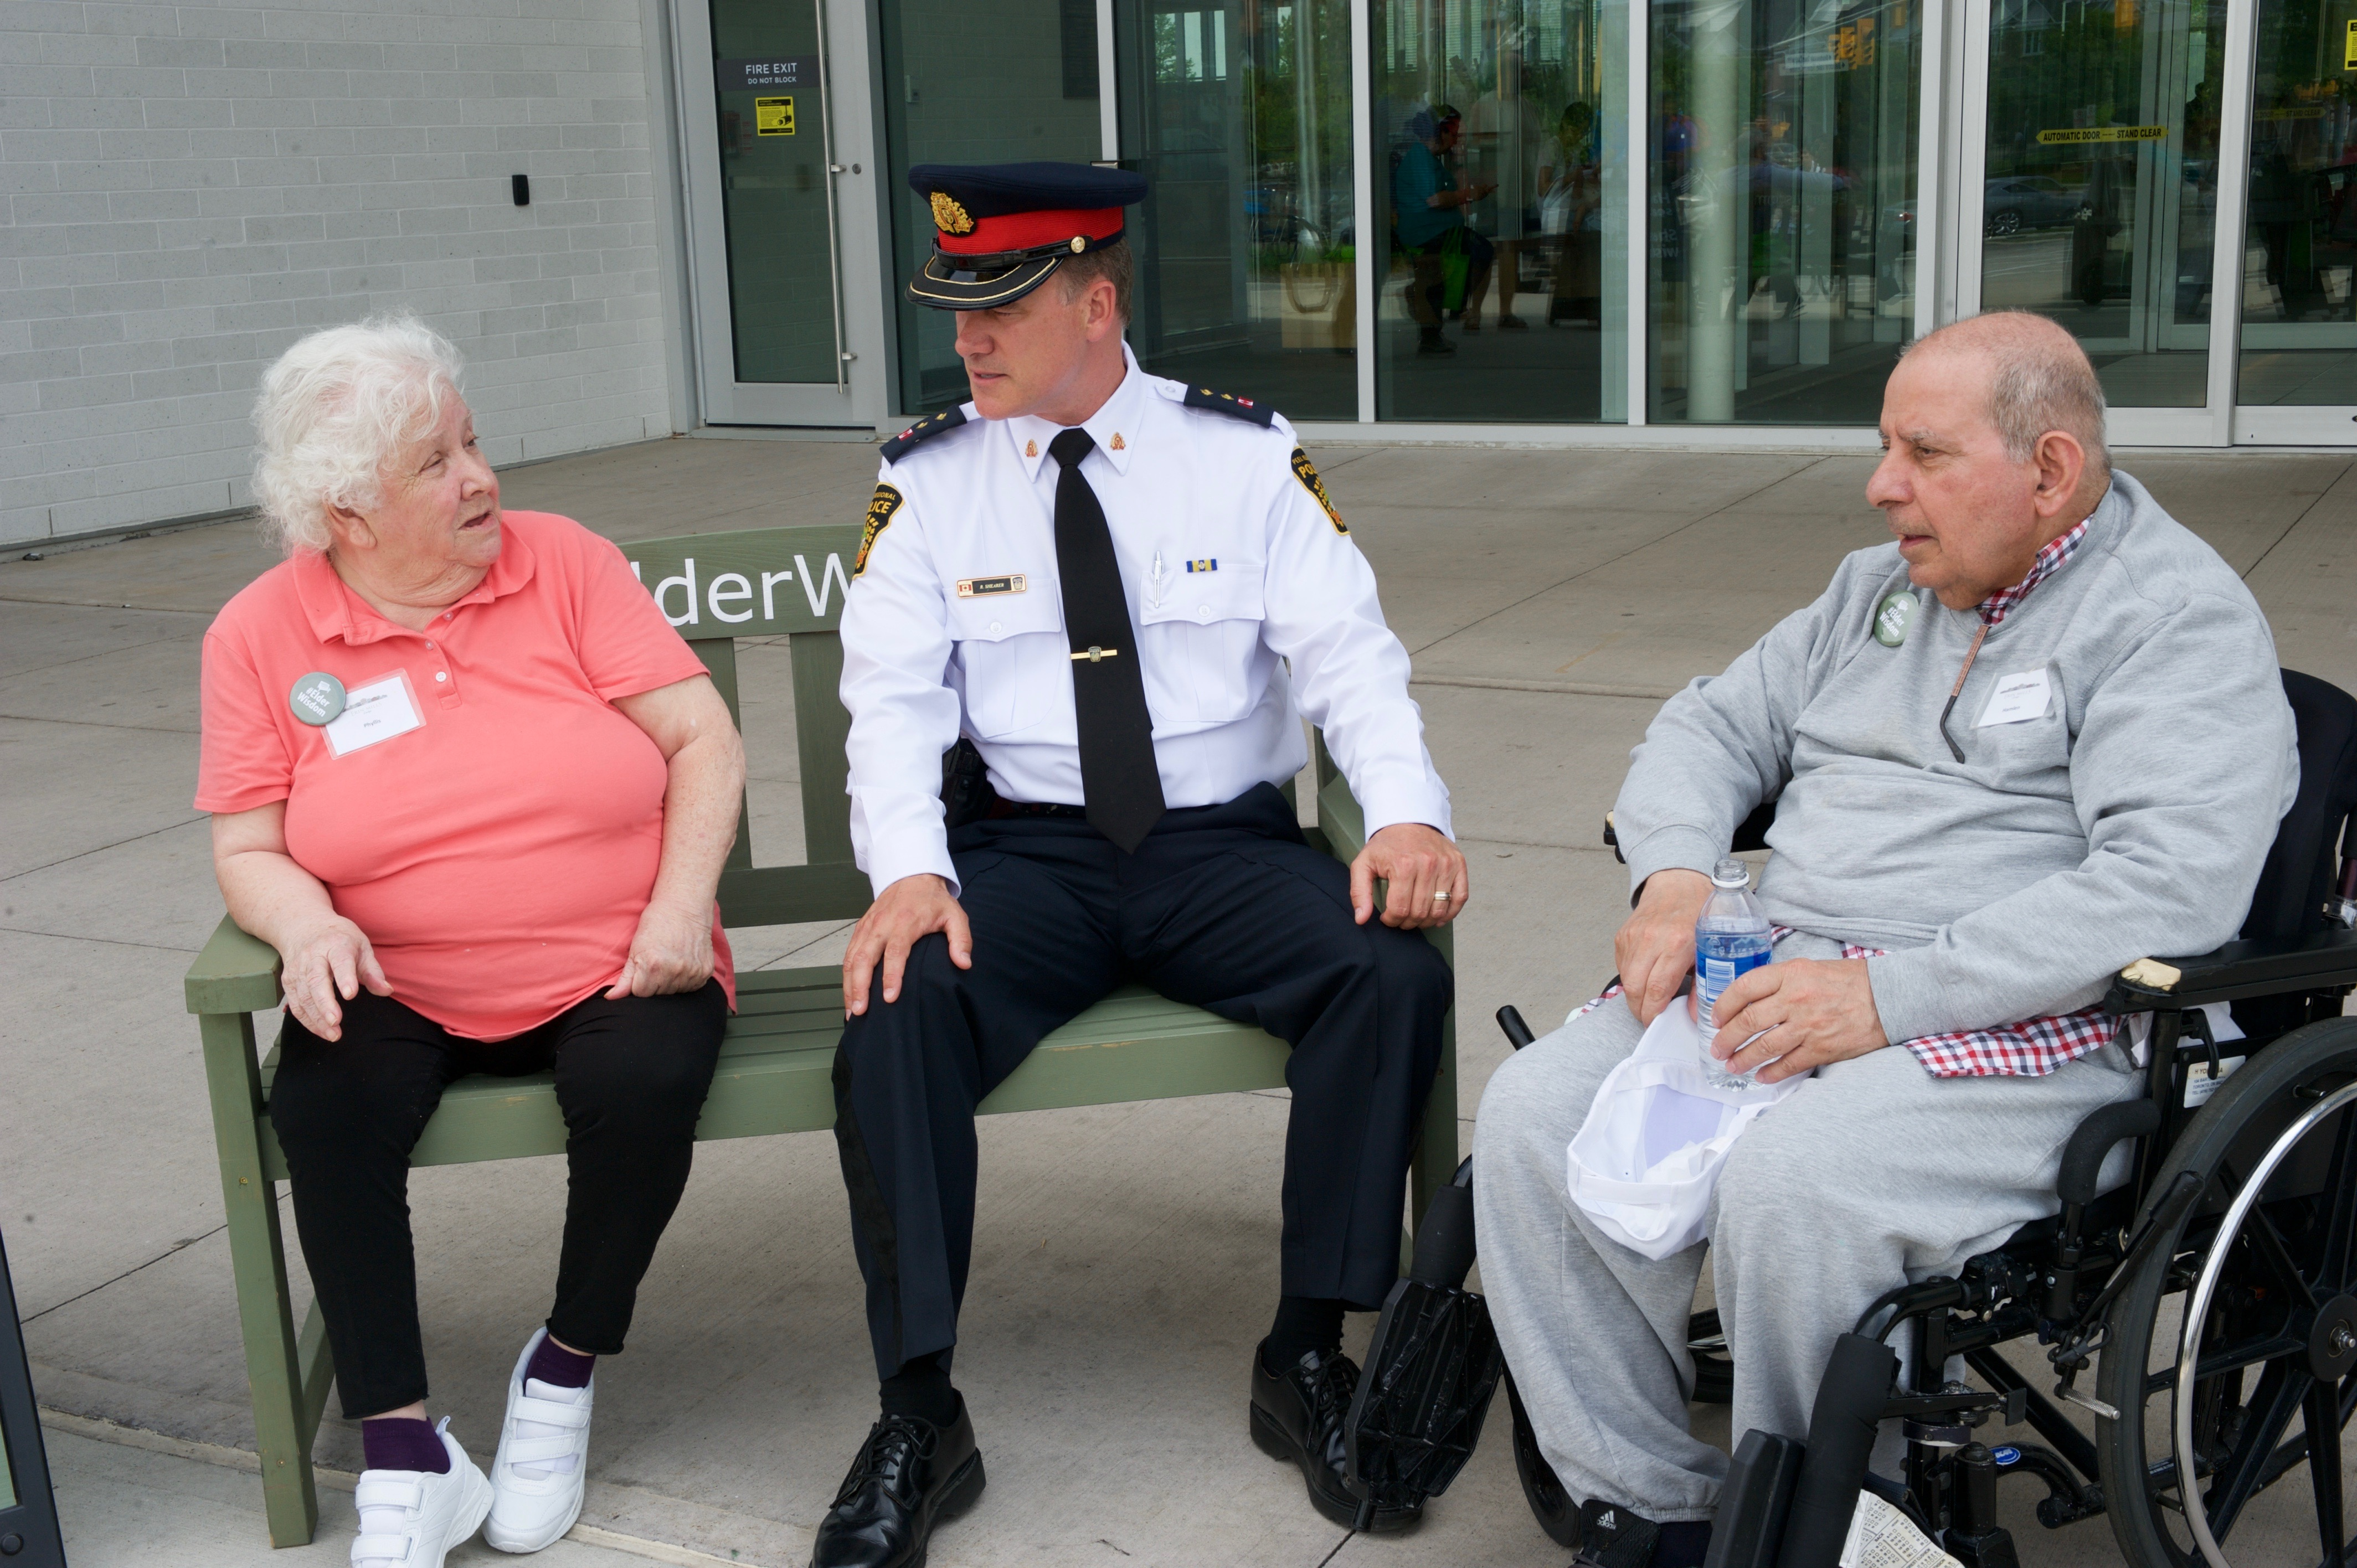 Phyllis and Hamlen share #ElderWisdom with the Peel Police